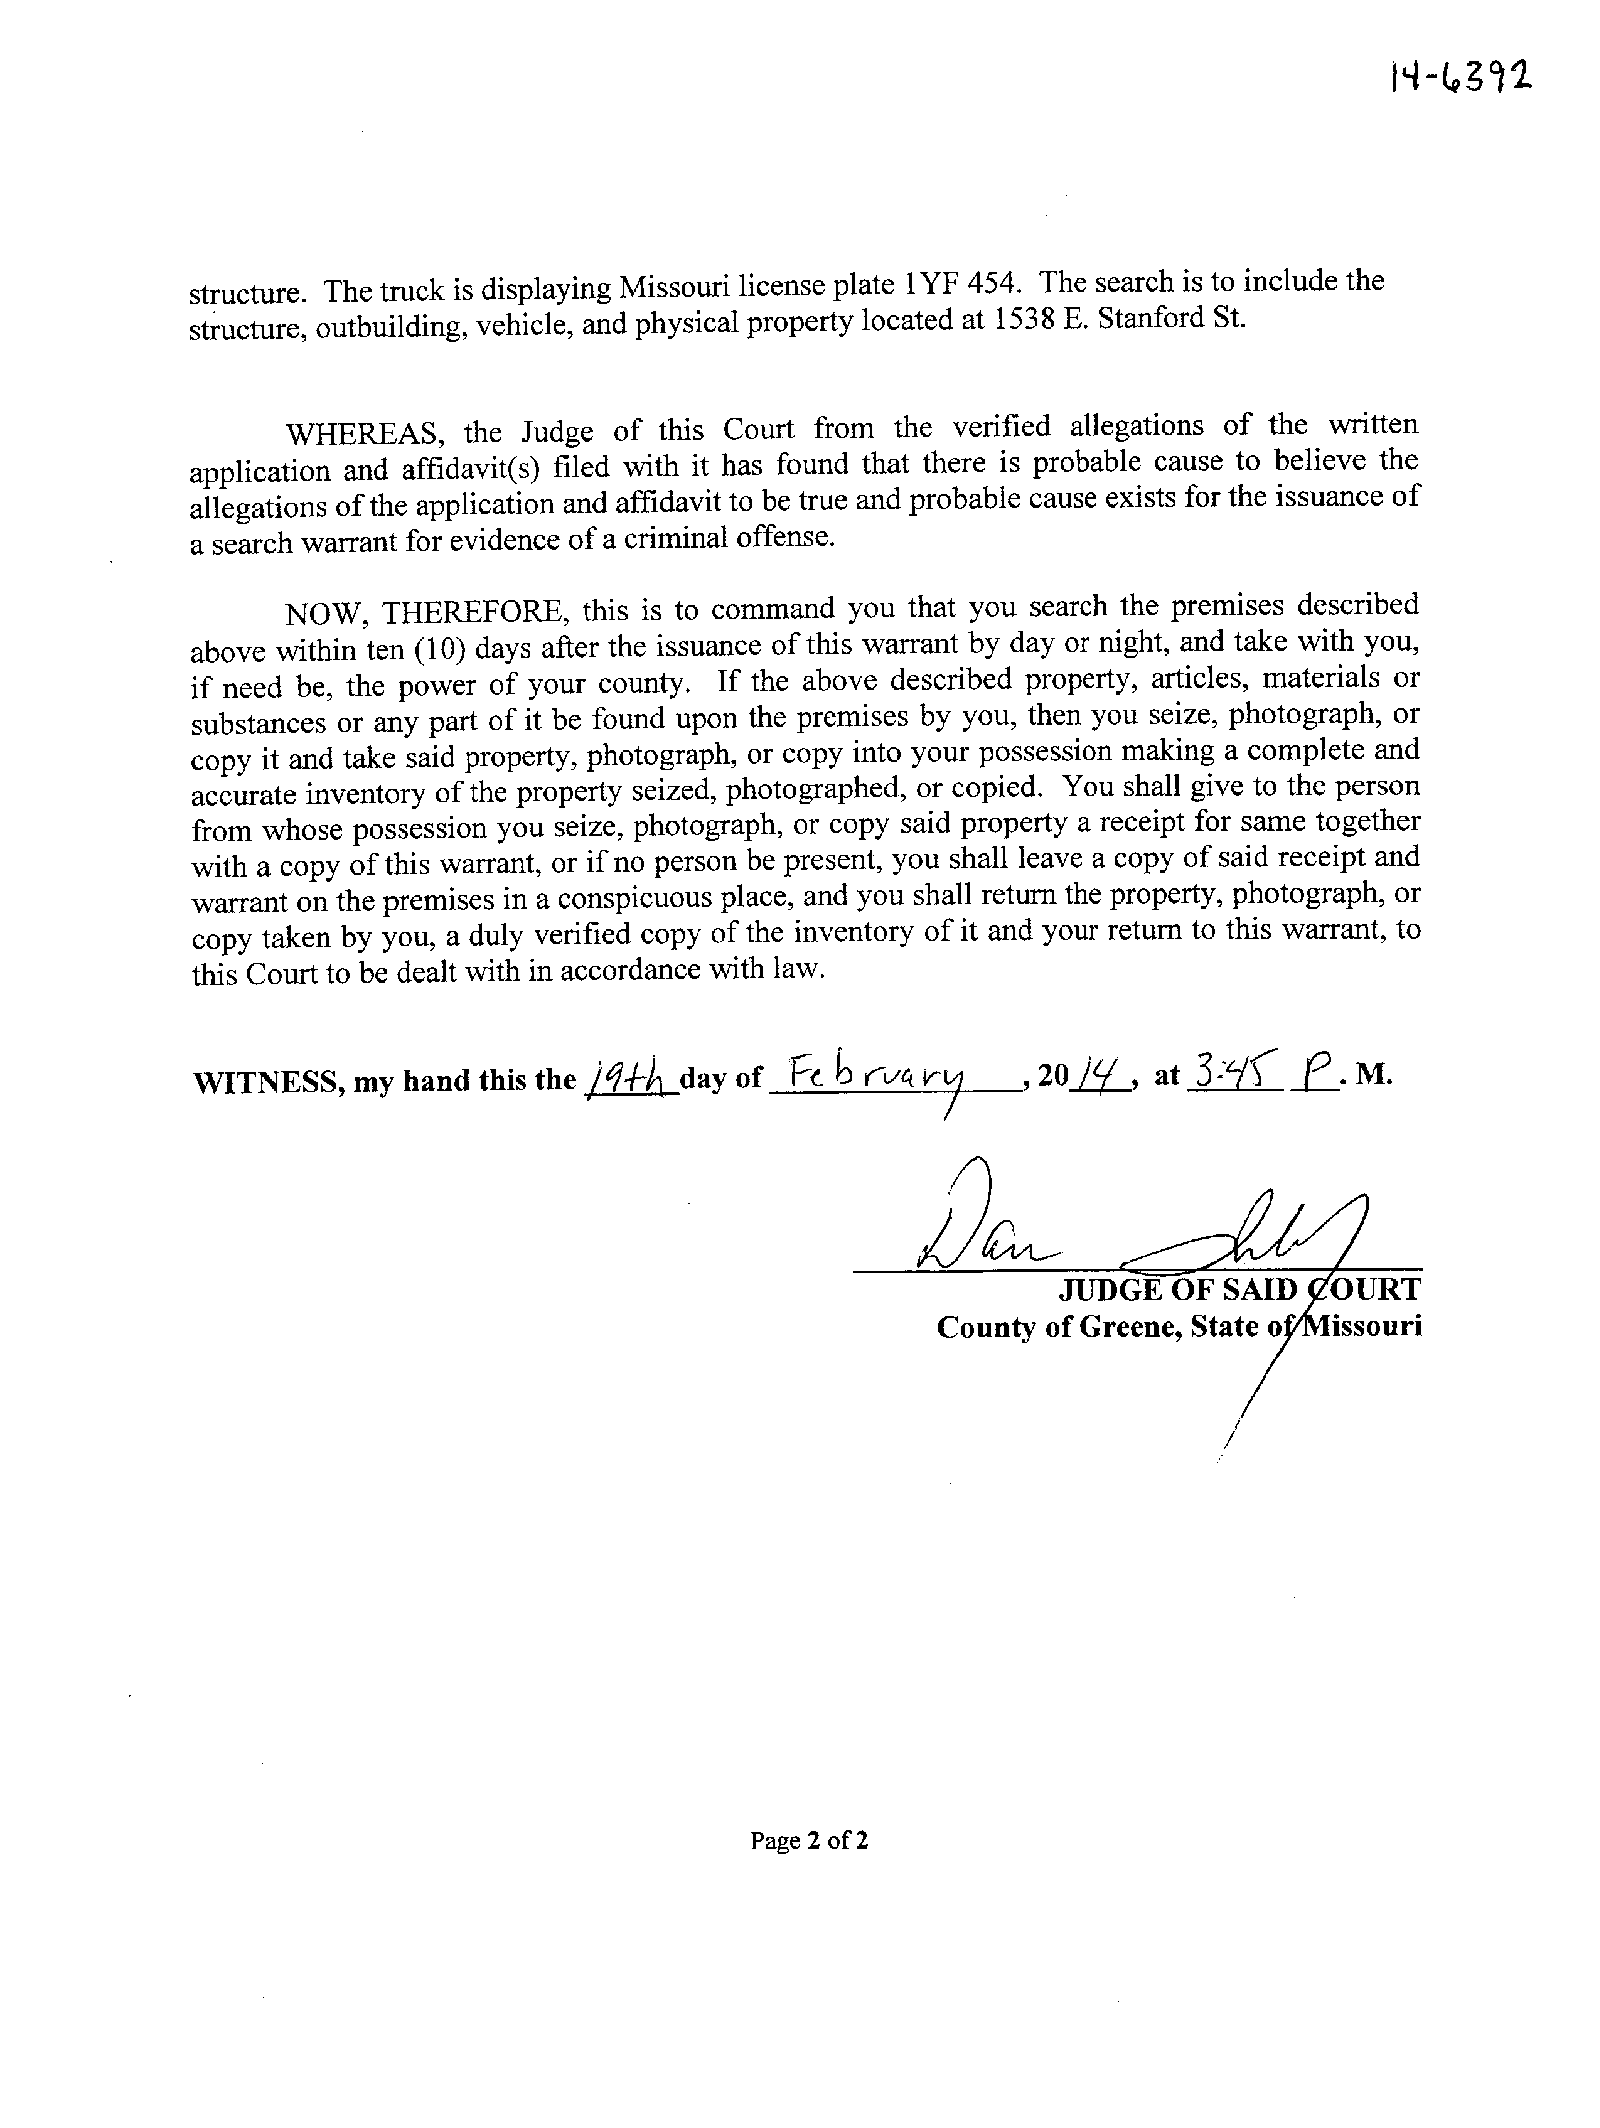 Copy of Search Warrant Return07.png